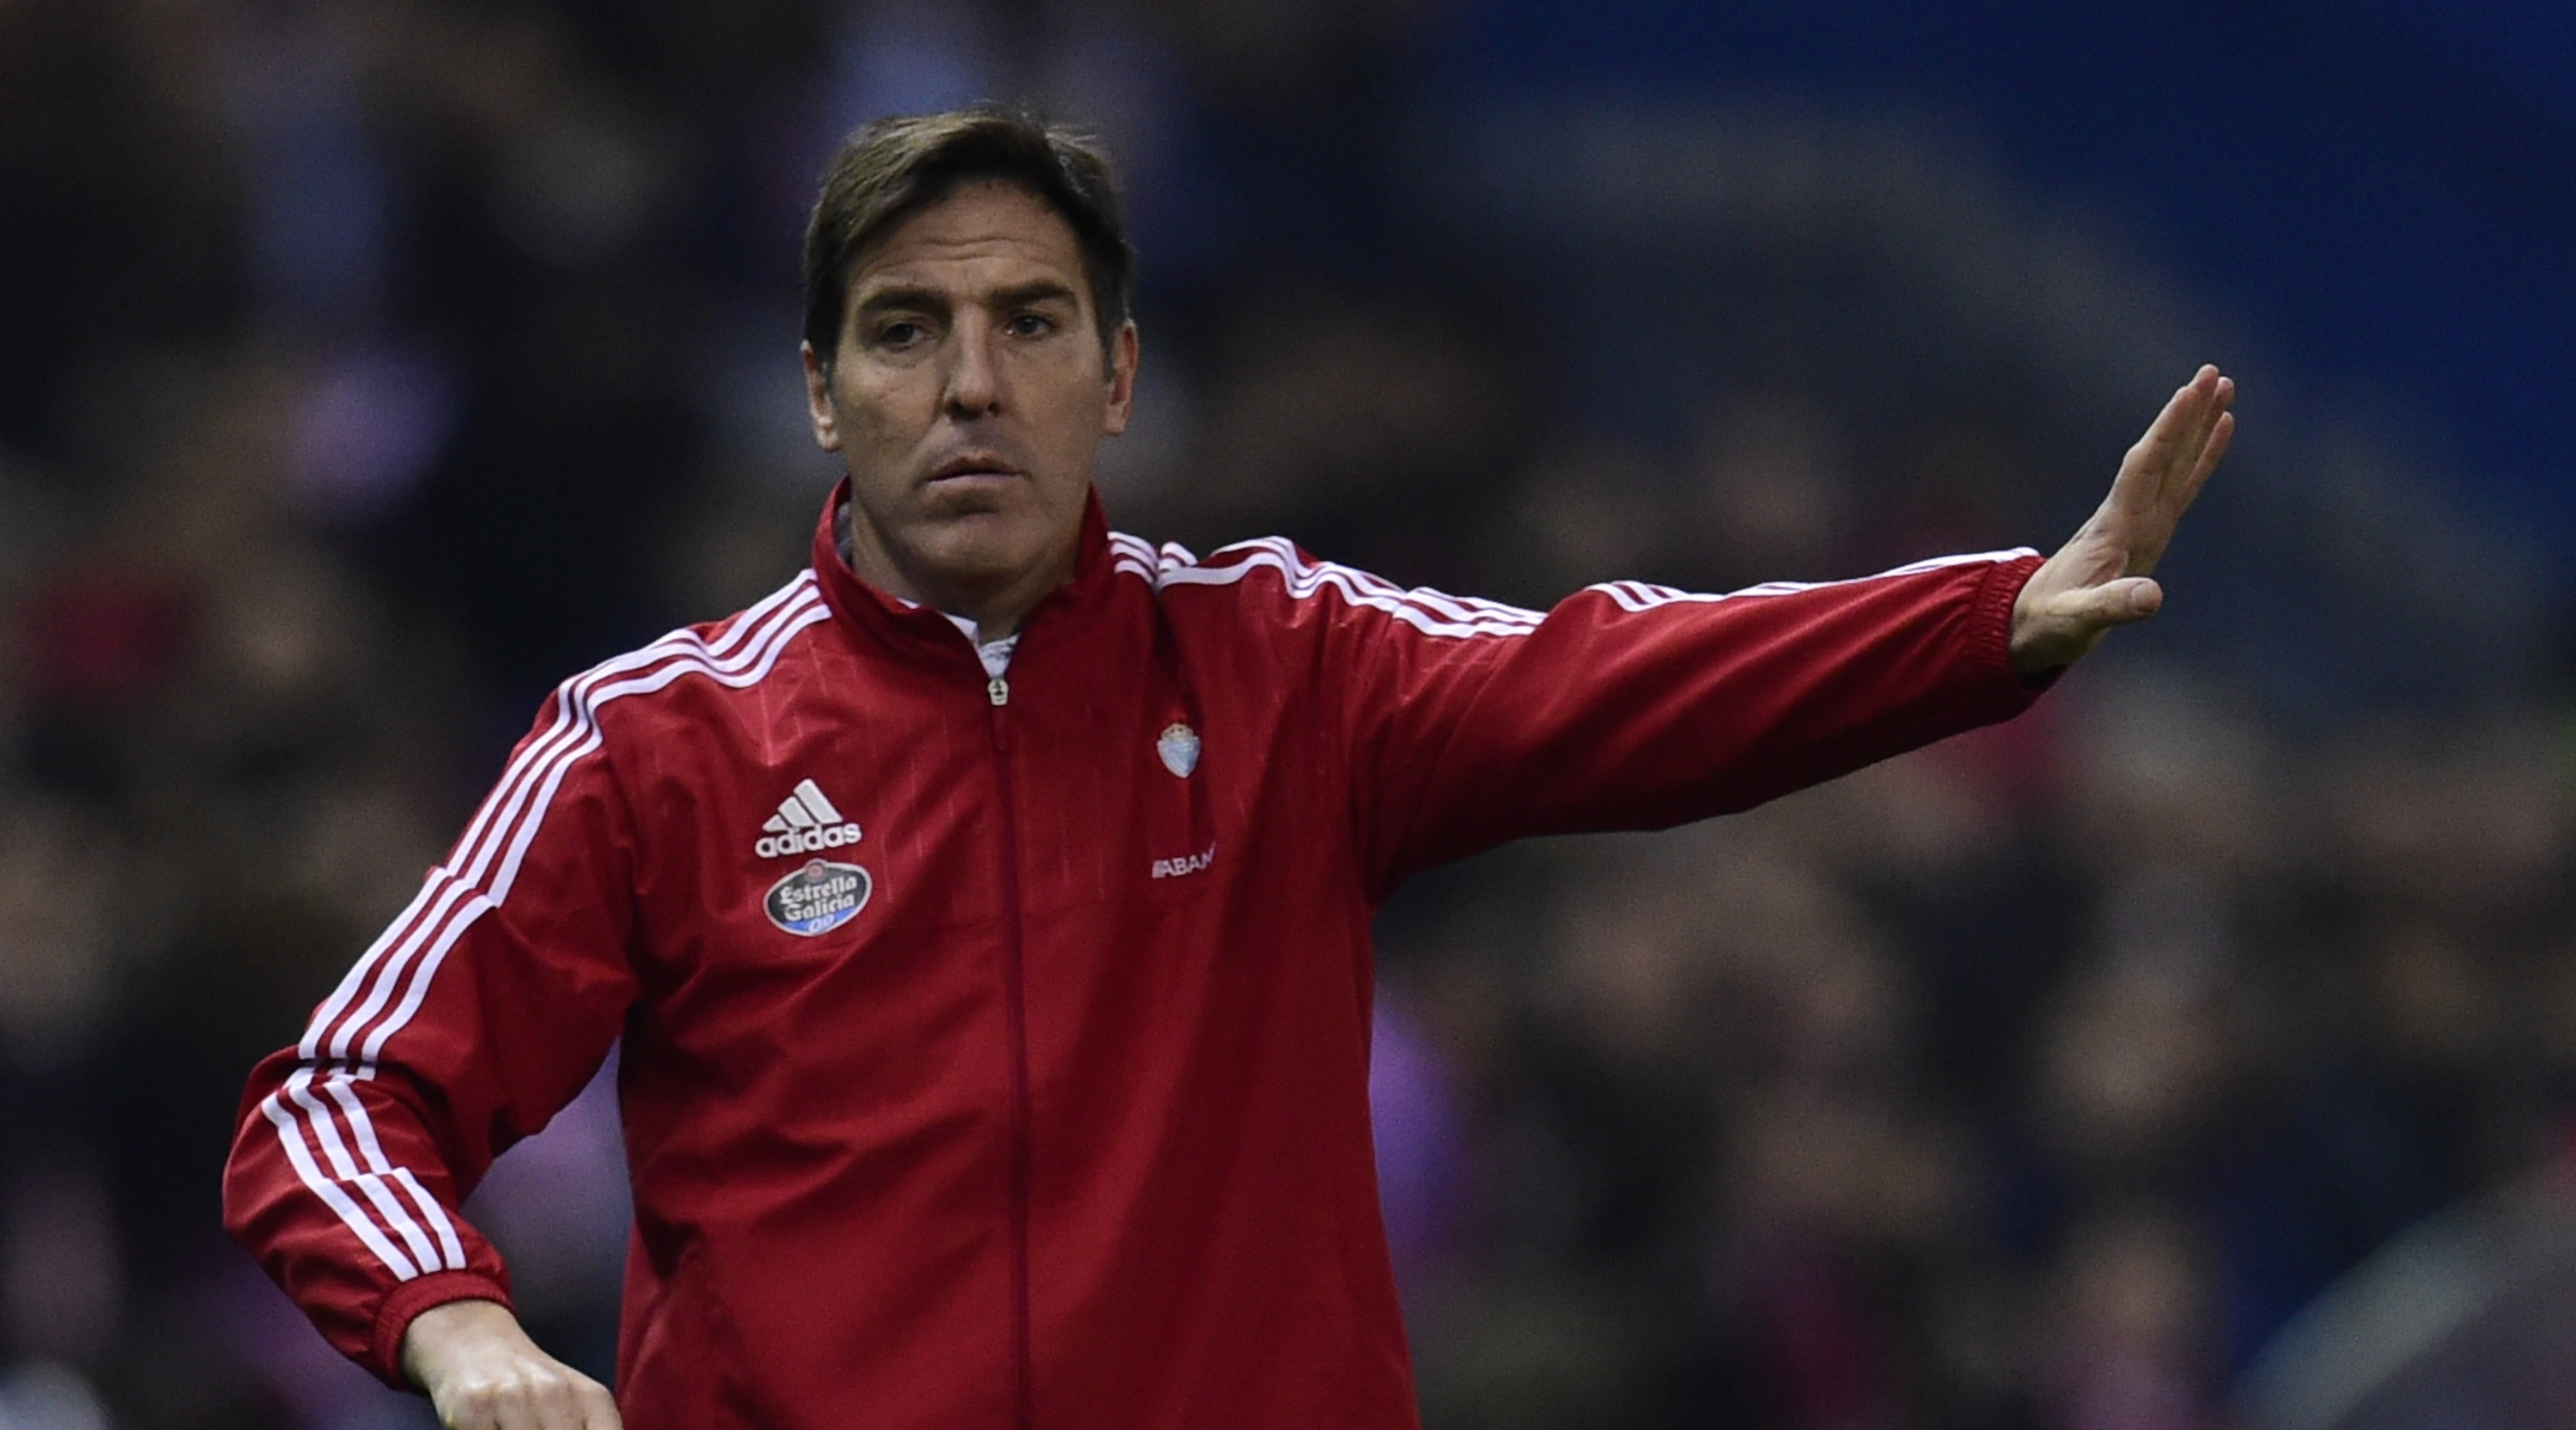 Celta Vigo's Argentinian coach Eduardo Berizzo gestures during the Spanish Copa del Rey (King's Cup) quarterfinal second leg football match Club Atletico de Madrid vs RC Celta de Vigo at the Vicente Calderon stadium in Madrid on January 27, 2016. AFP PHOTO/ JAVIER SORIANO / AFP / JAVIER SORIANO (Photo credit should read JAVIER SORIANO/AFP/Getty Images)